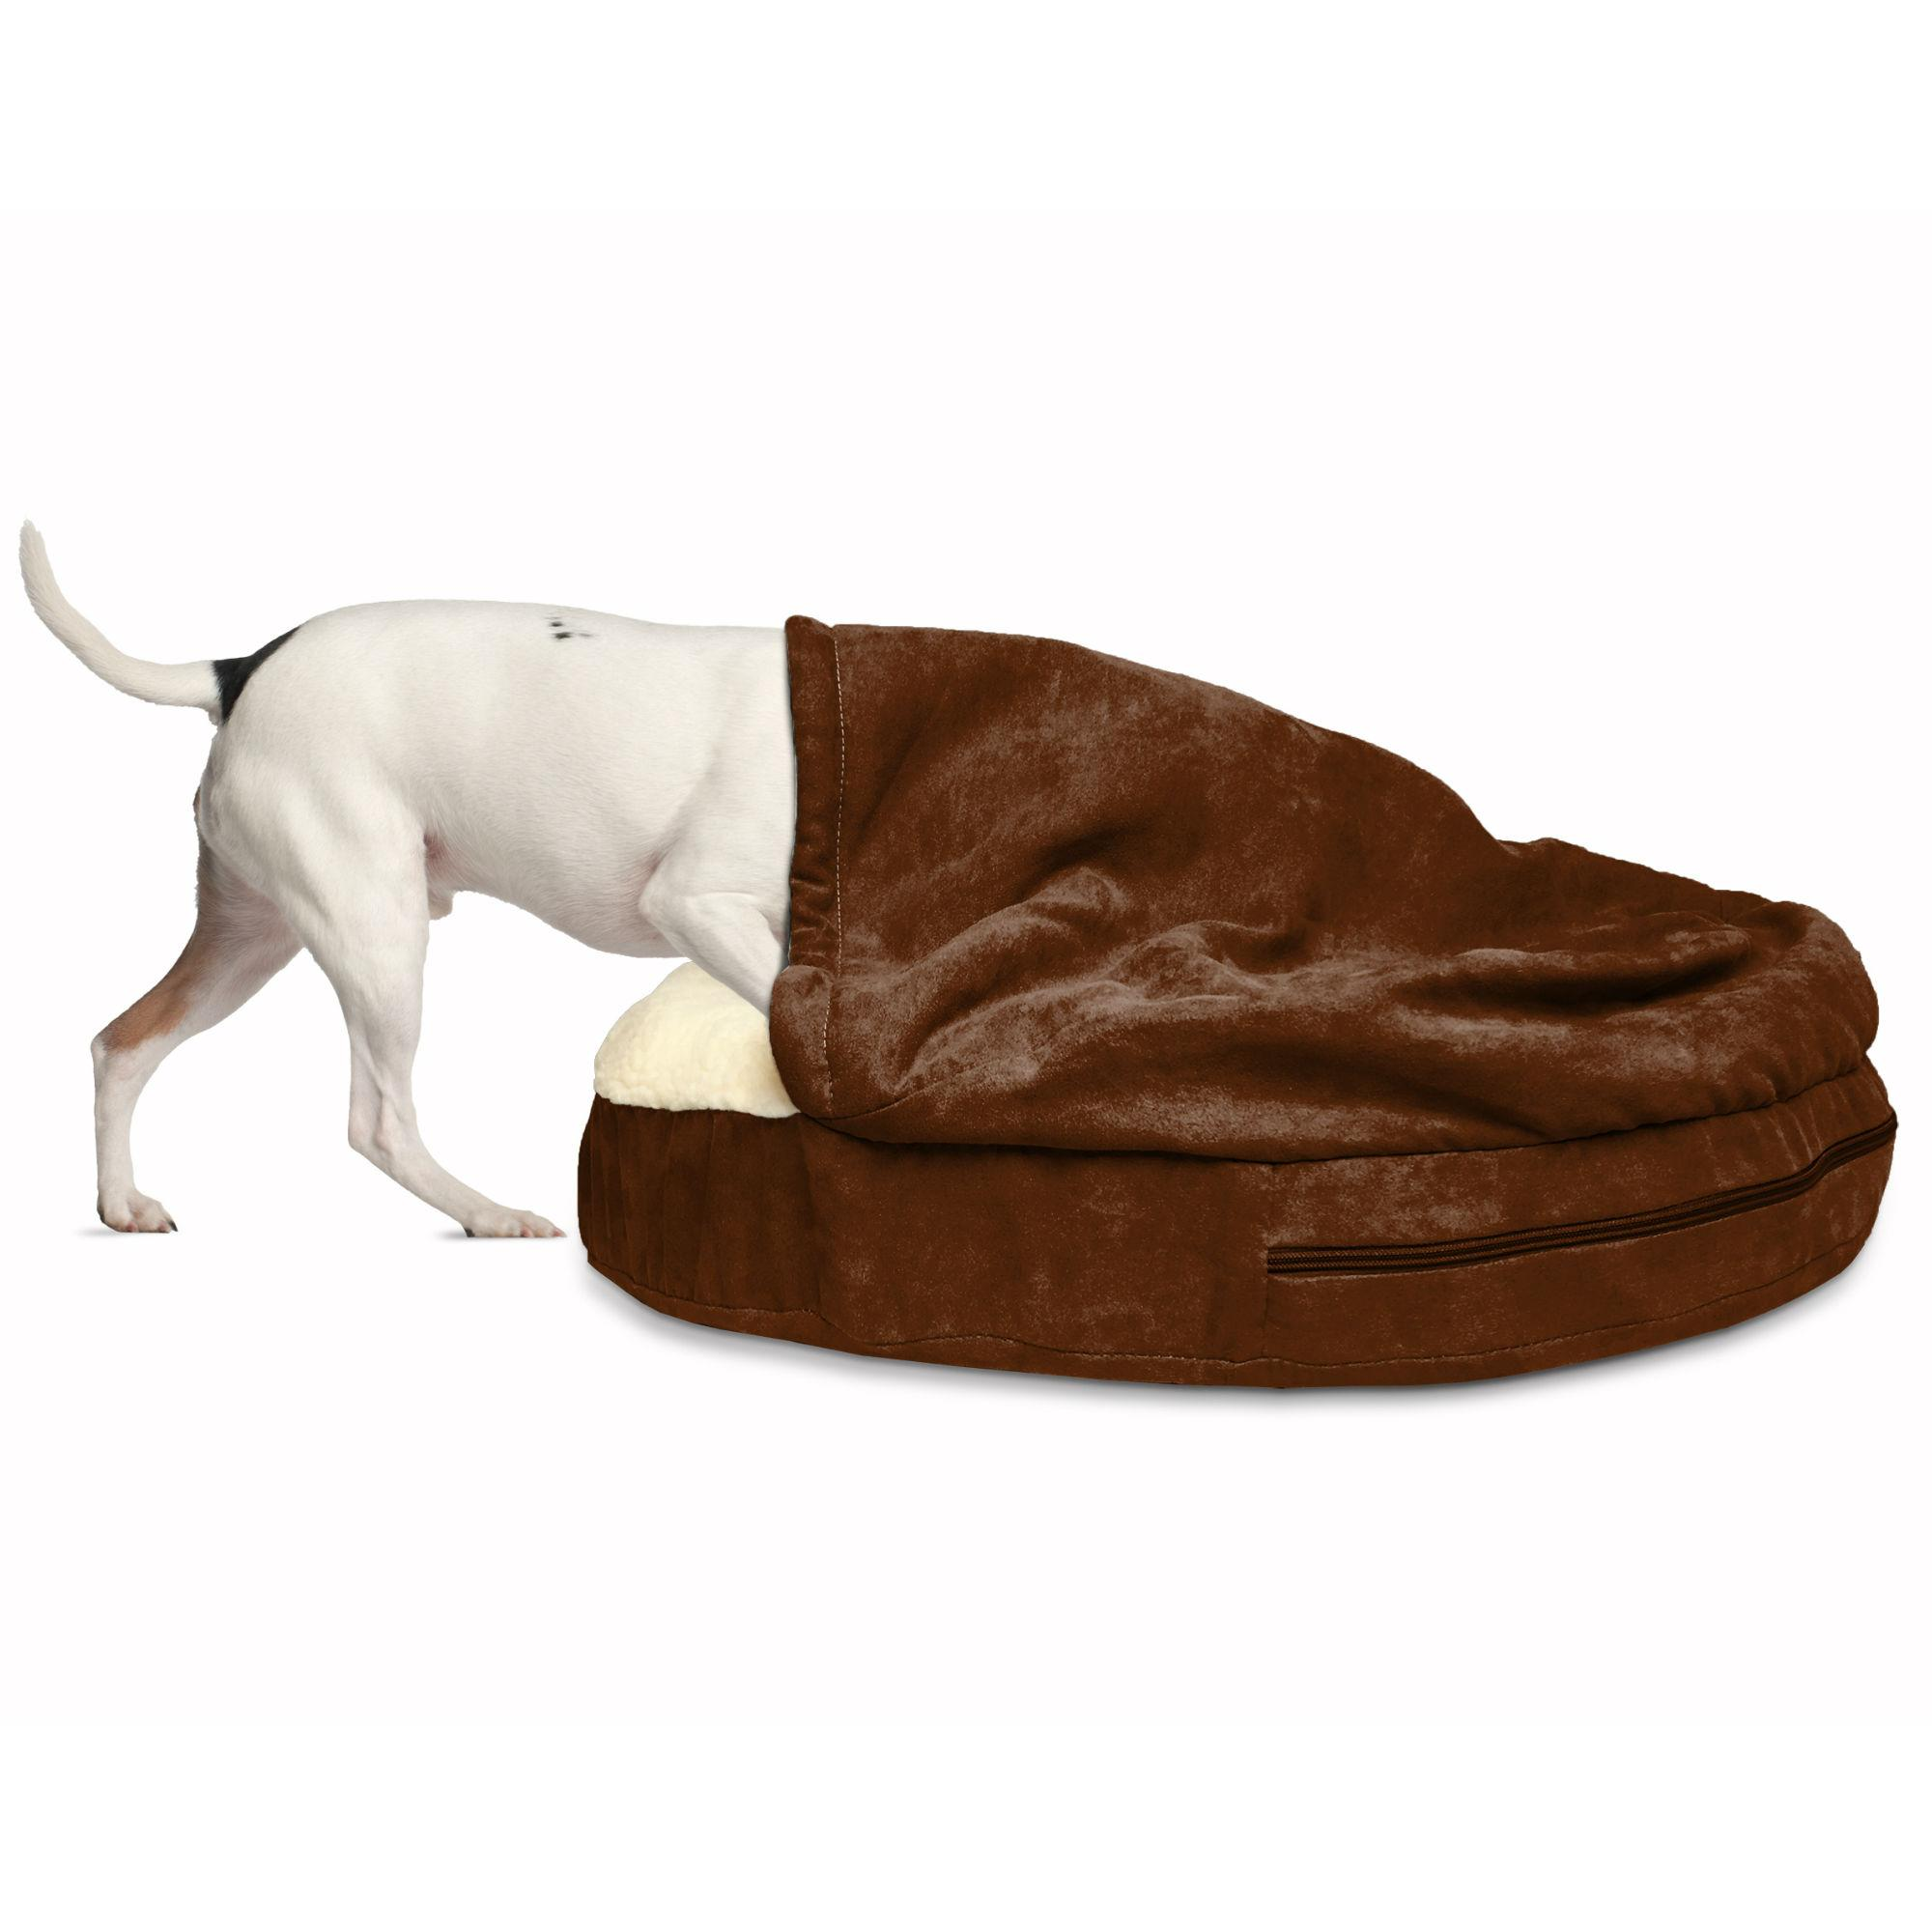 Furhaven Faux Sheepskin Snuggery Pet Bed - Espresso